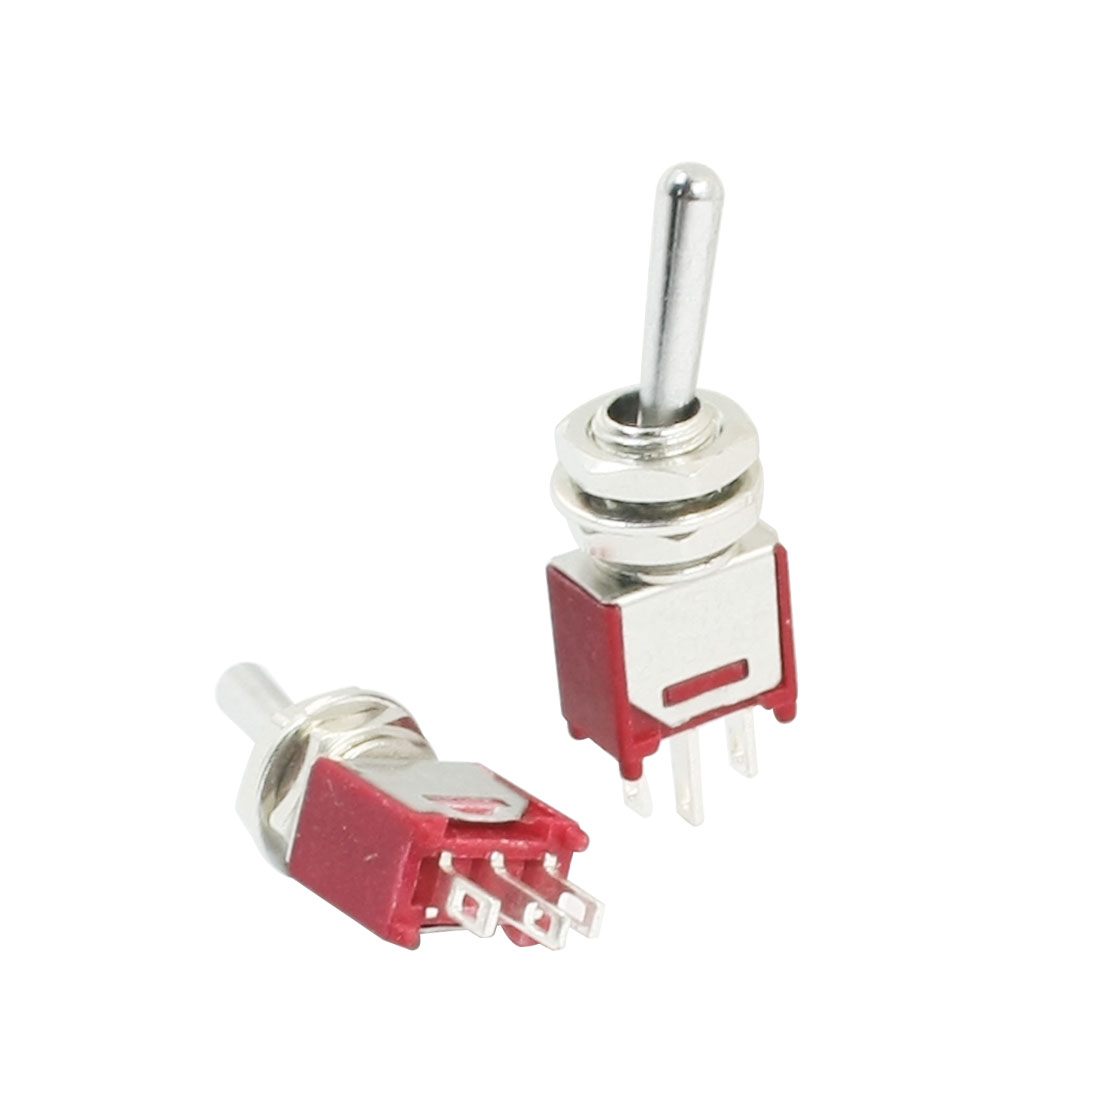 2pcs SPDT 2 Positions 3Pin Terminals Rocker Toggle Switch AC 250V 1.5A